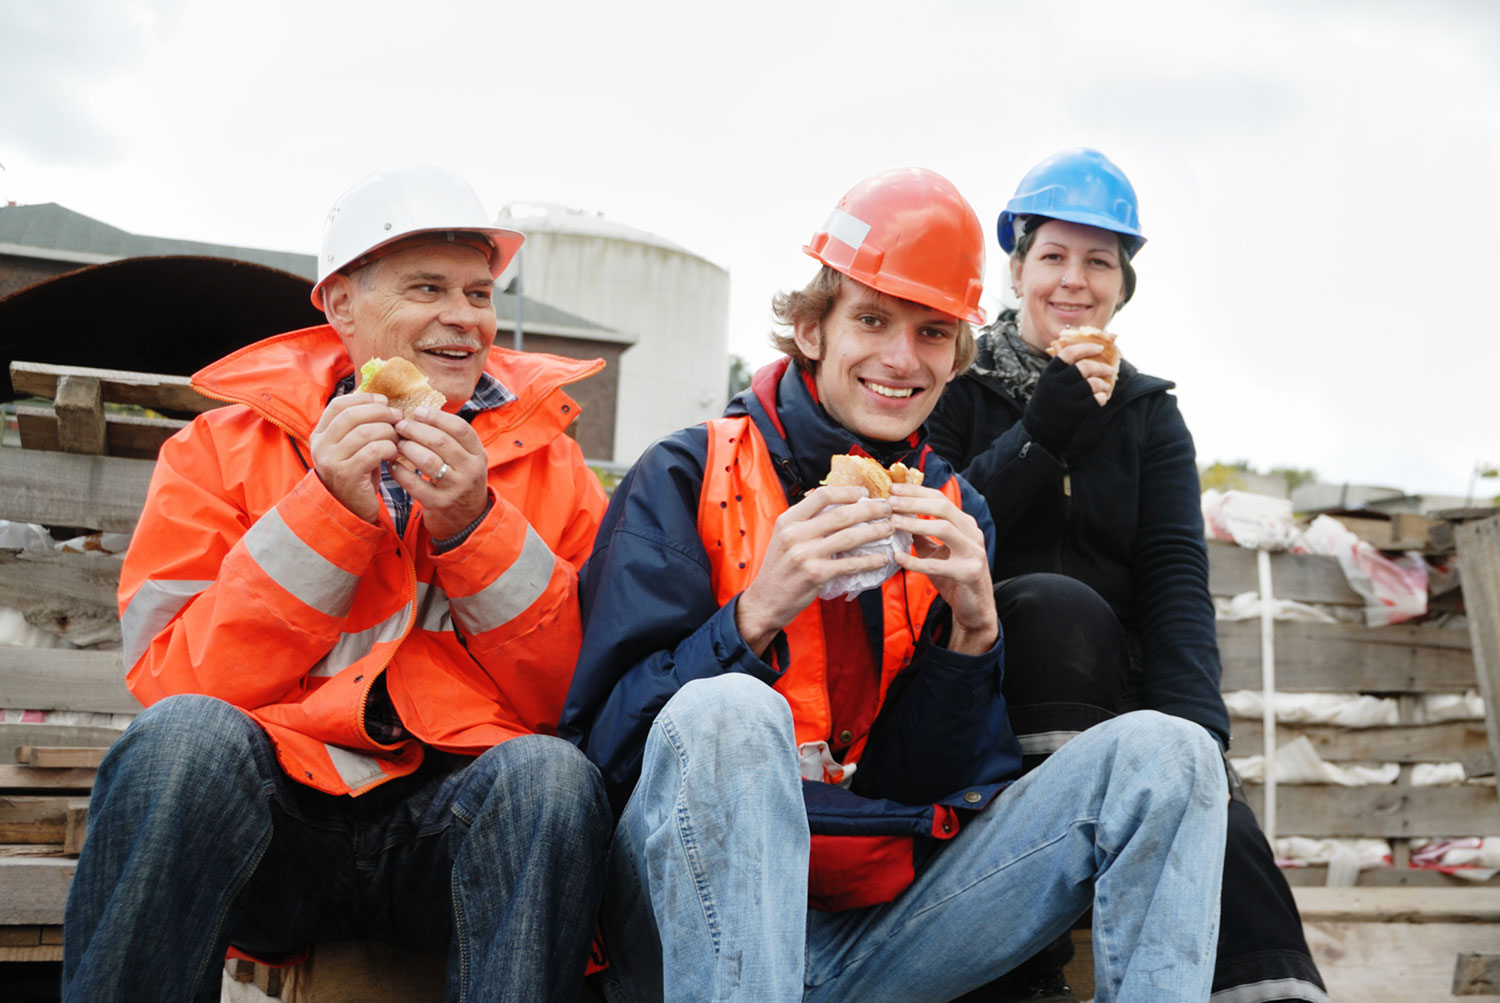 Construction workers having lunch on site